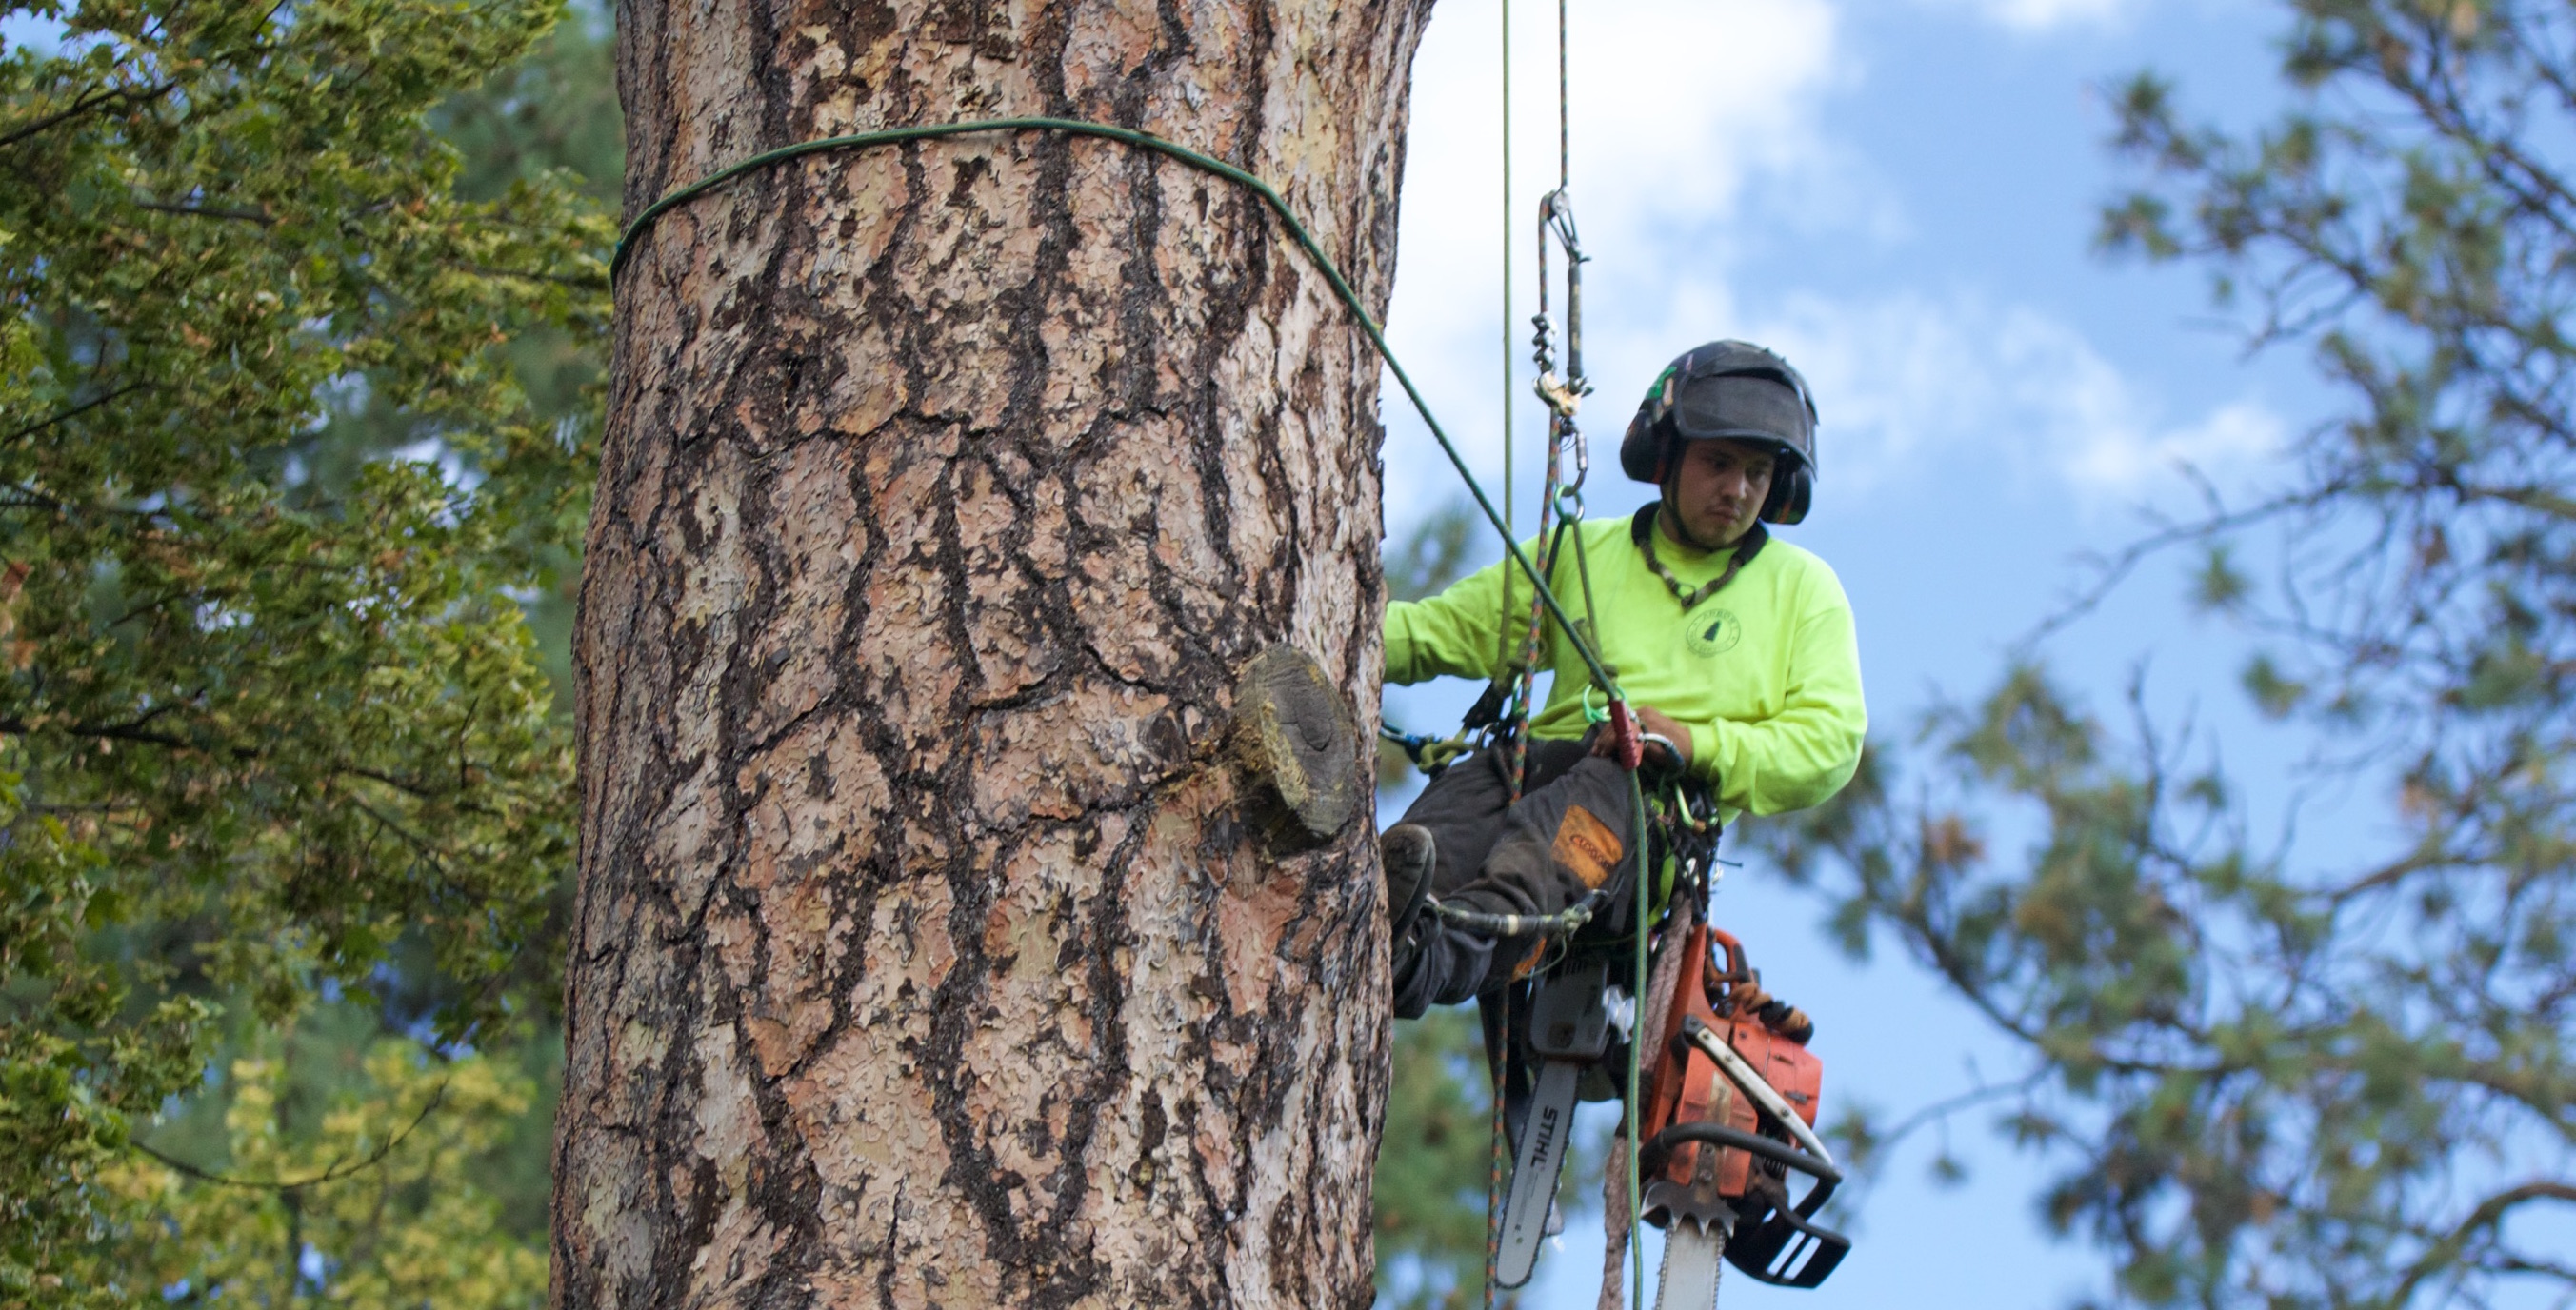 Arbor 1 Tree Service Is Your Source For All Of Bend Oregon Care Needs We Have Five Isa Certified Arborists On Staff To Help You Determine